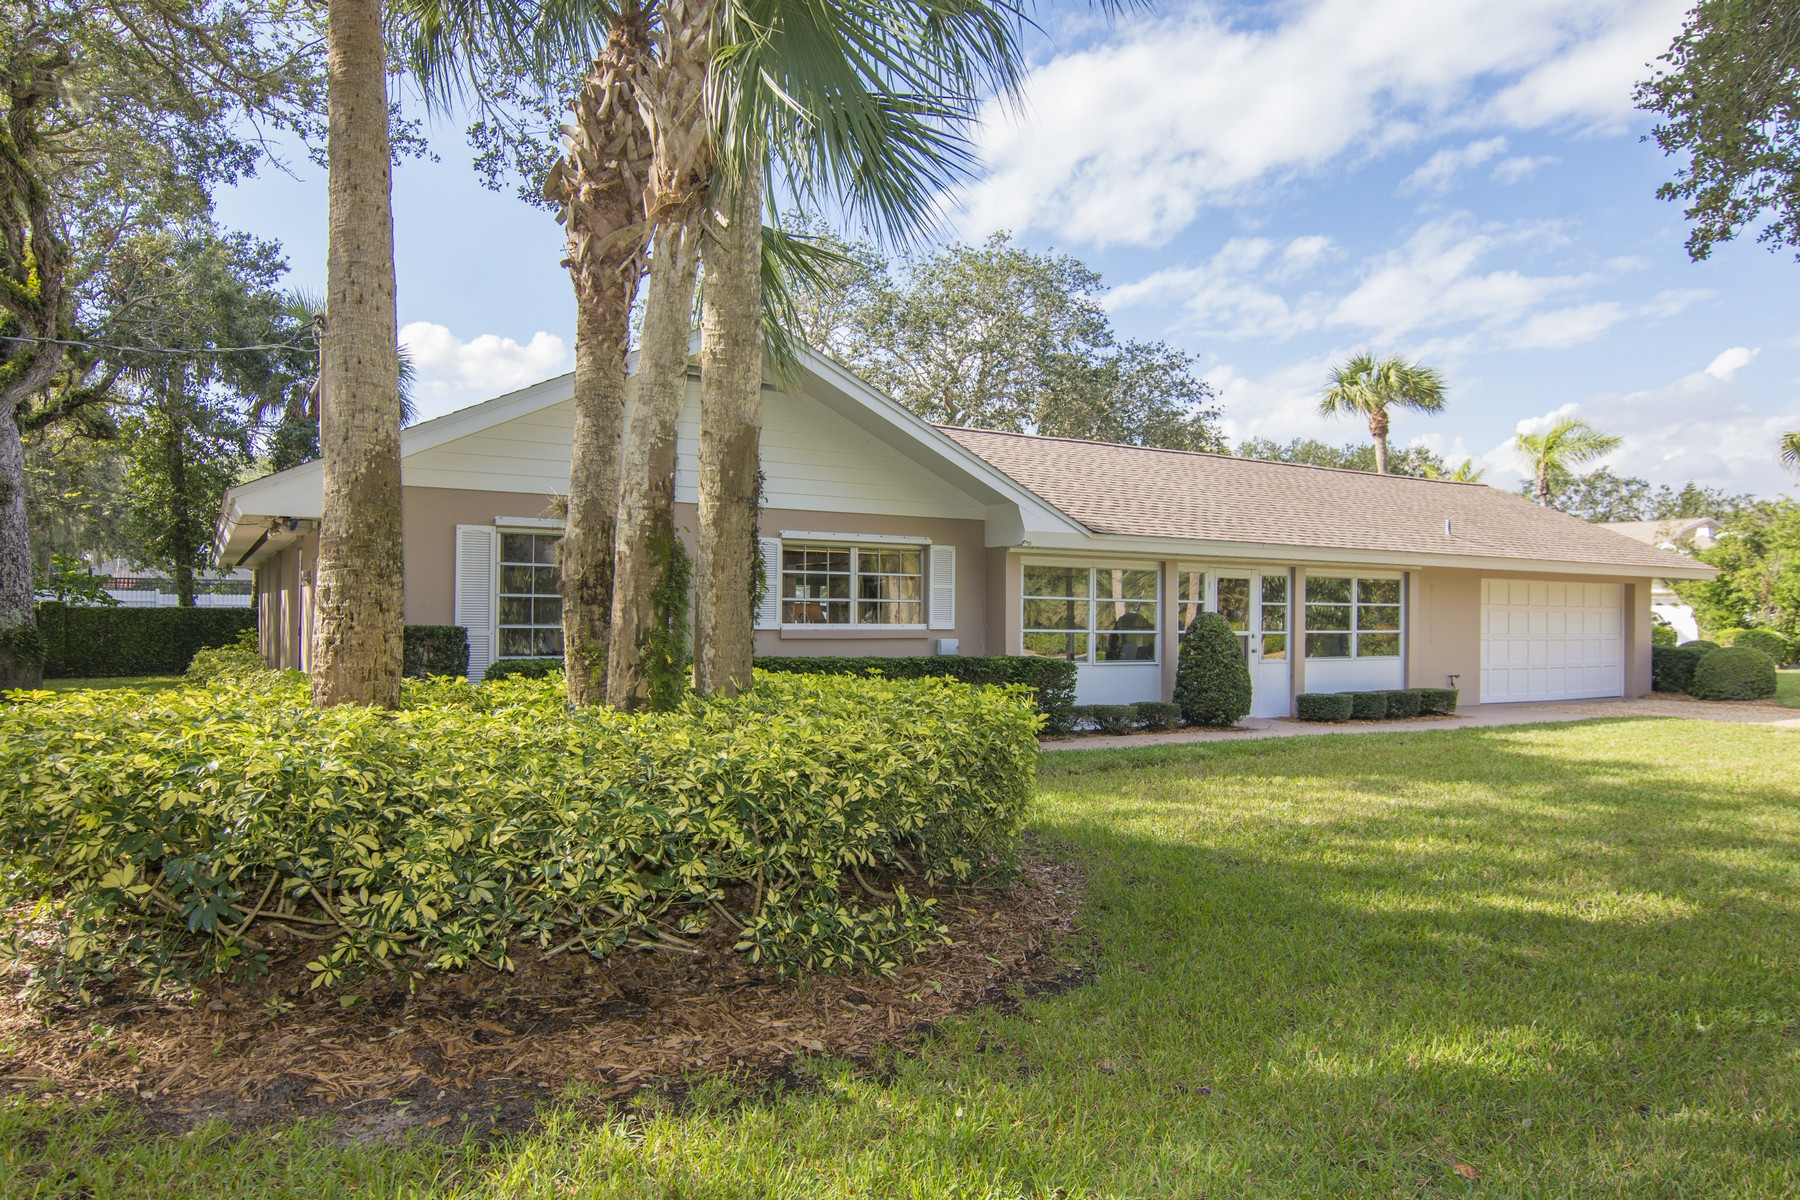 Single Family Home for Sale at Central Beach Charmer! 386 Greytwig Road, Vero Beach, Florida, 32963 United States